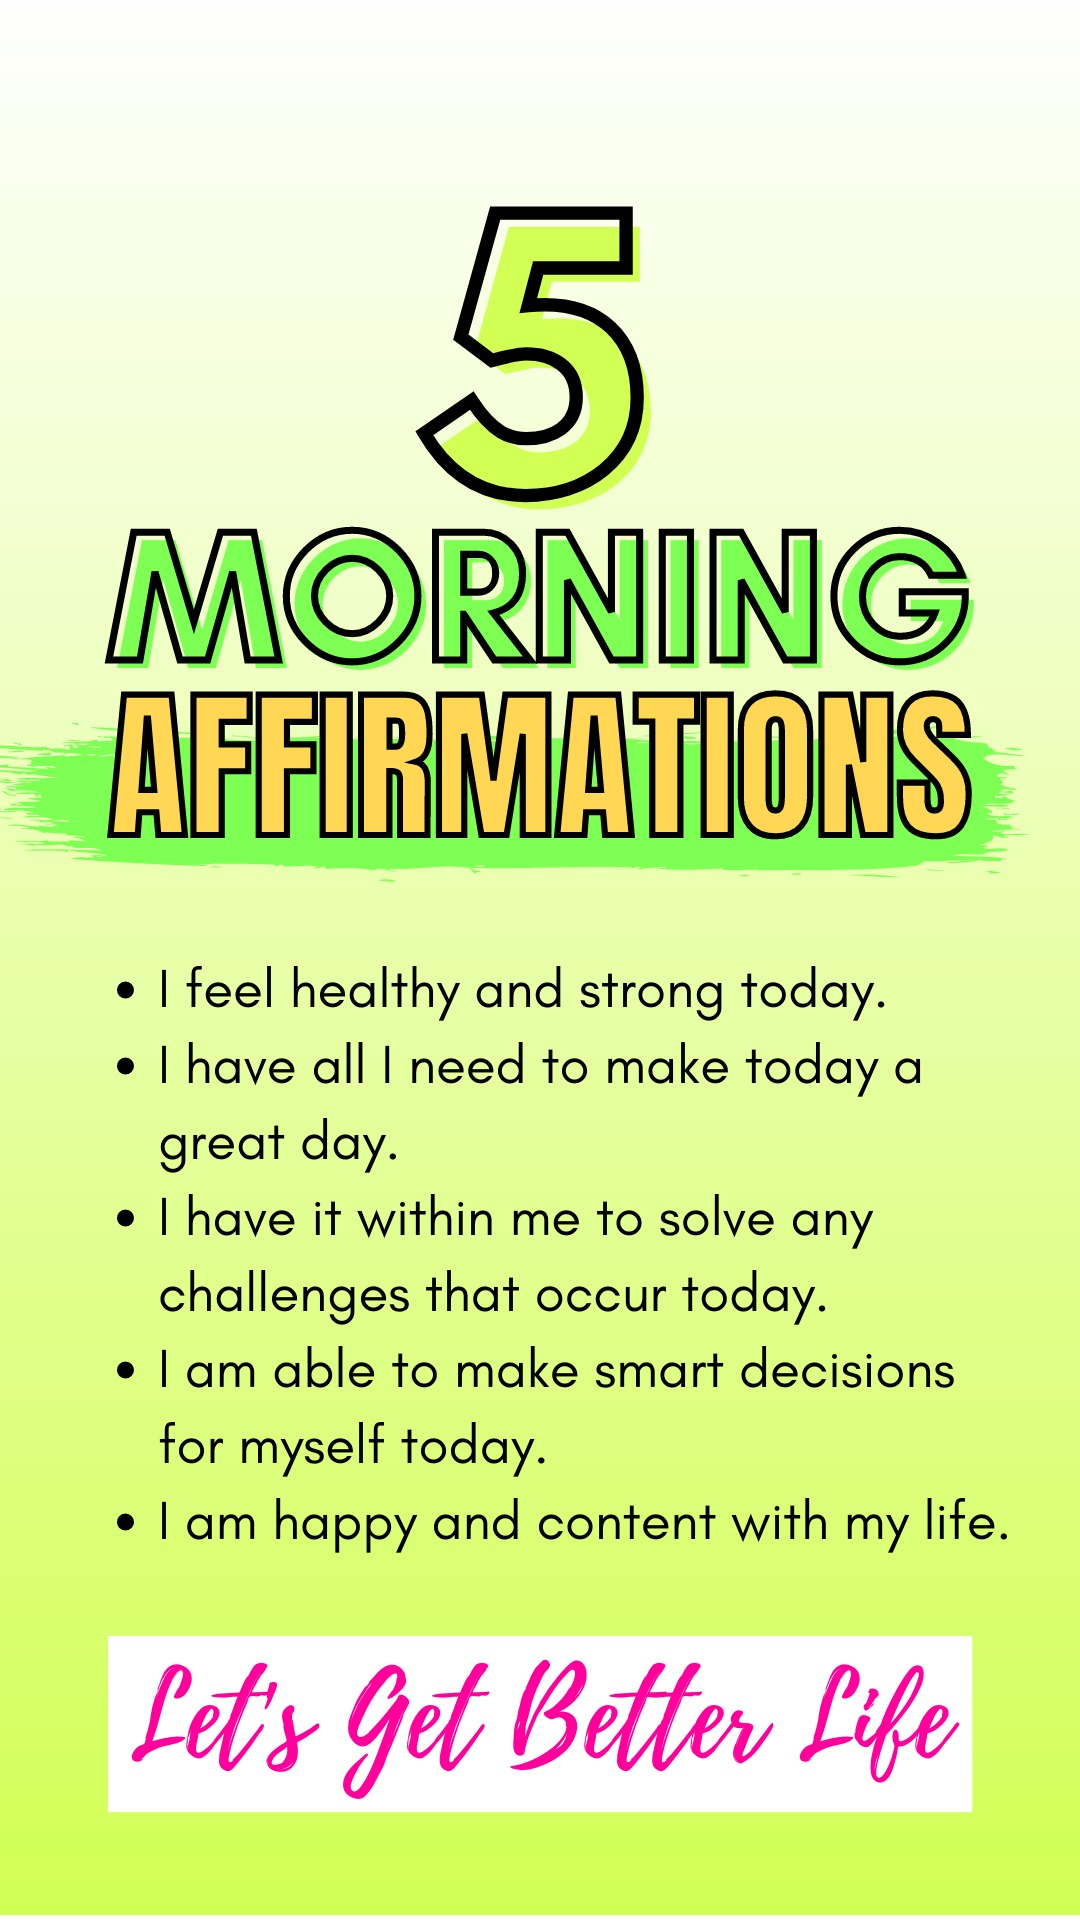 5 Positive Morning Affirmations You Can Use Daily